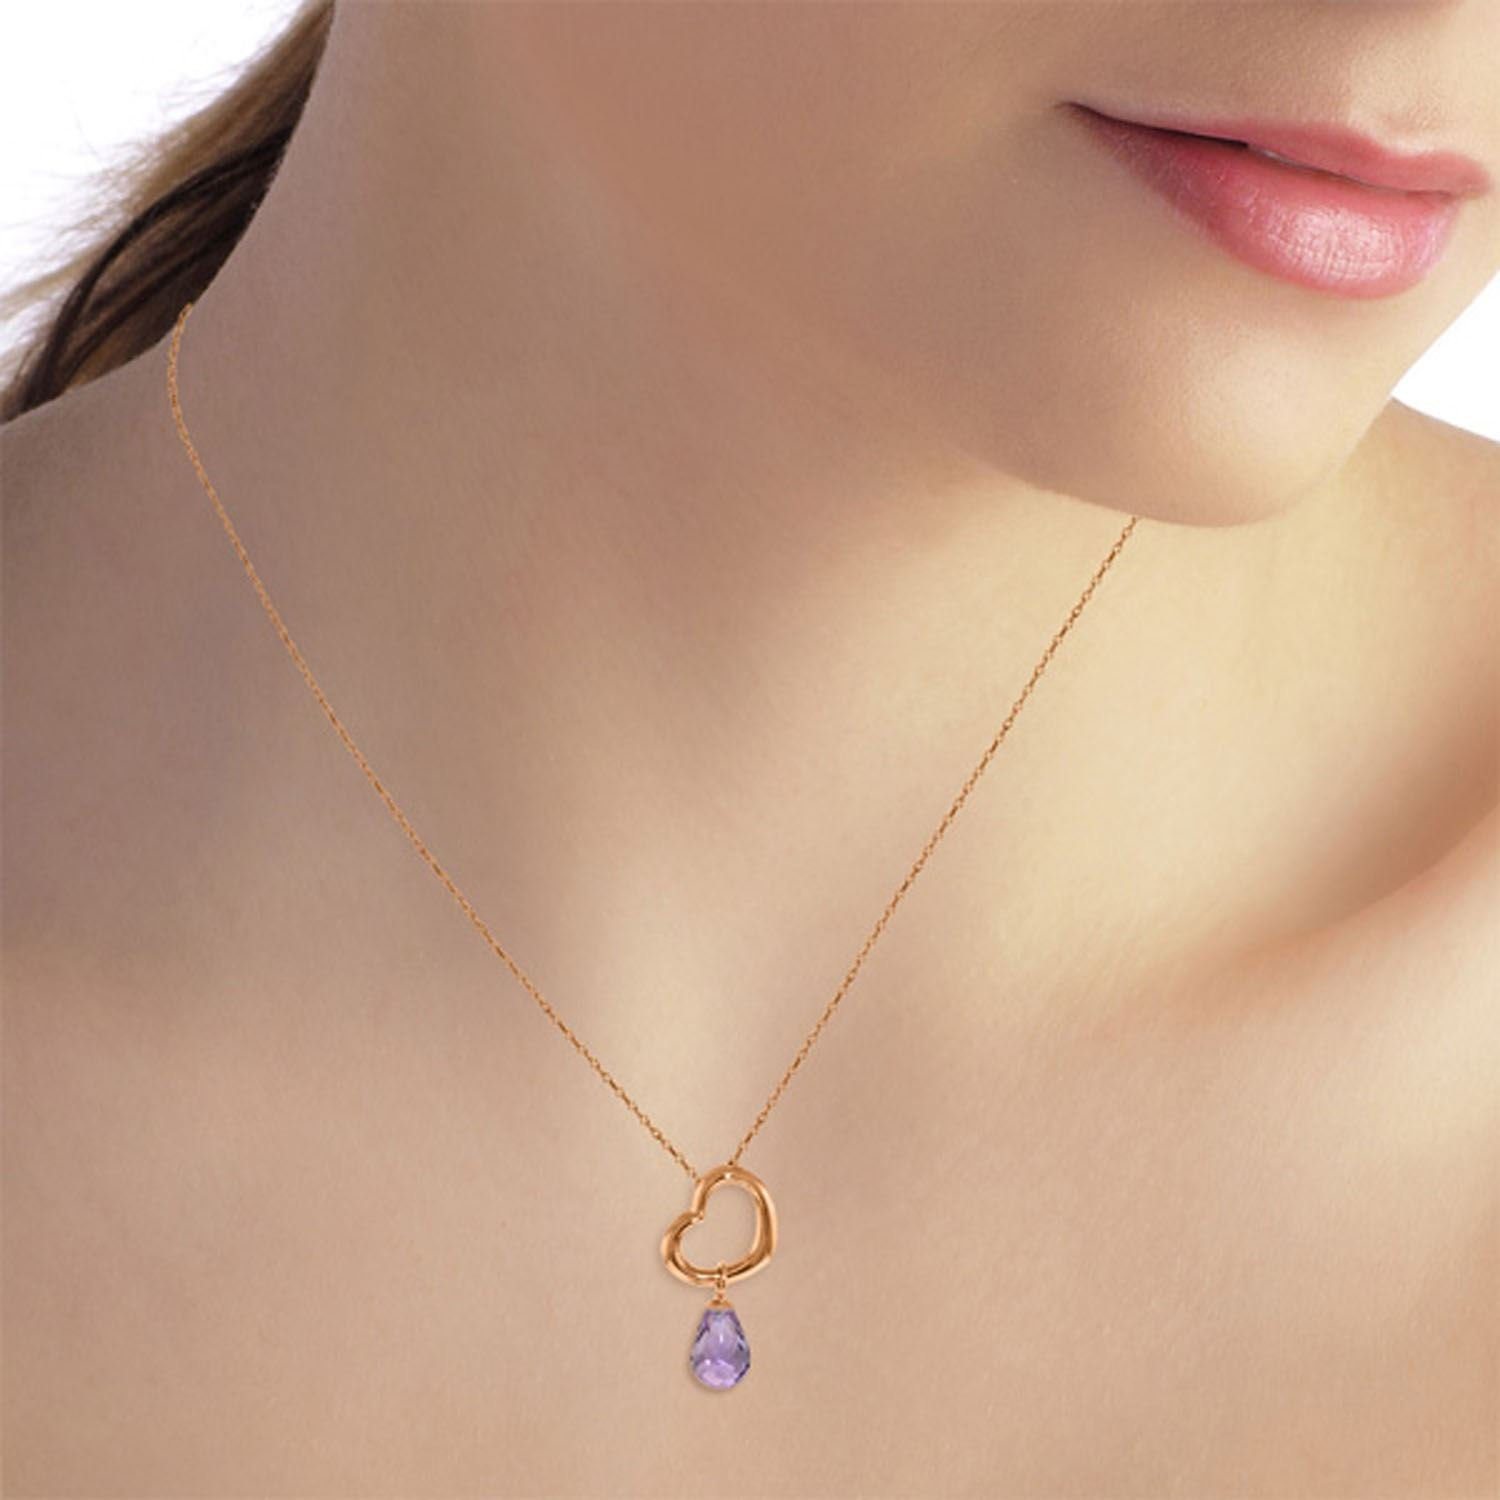 ALARRI 14K Solid Rose Gold Heart Necklace w// Dangling Natural Amethyst with 22 Inch Chain Length